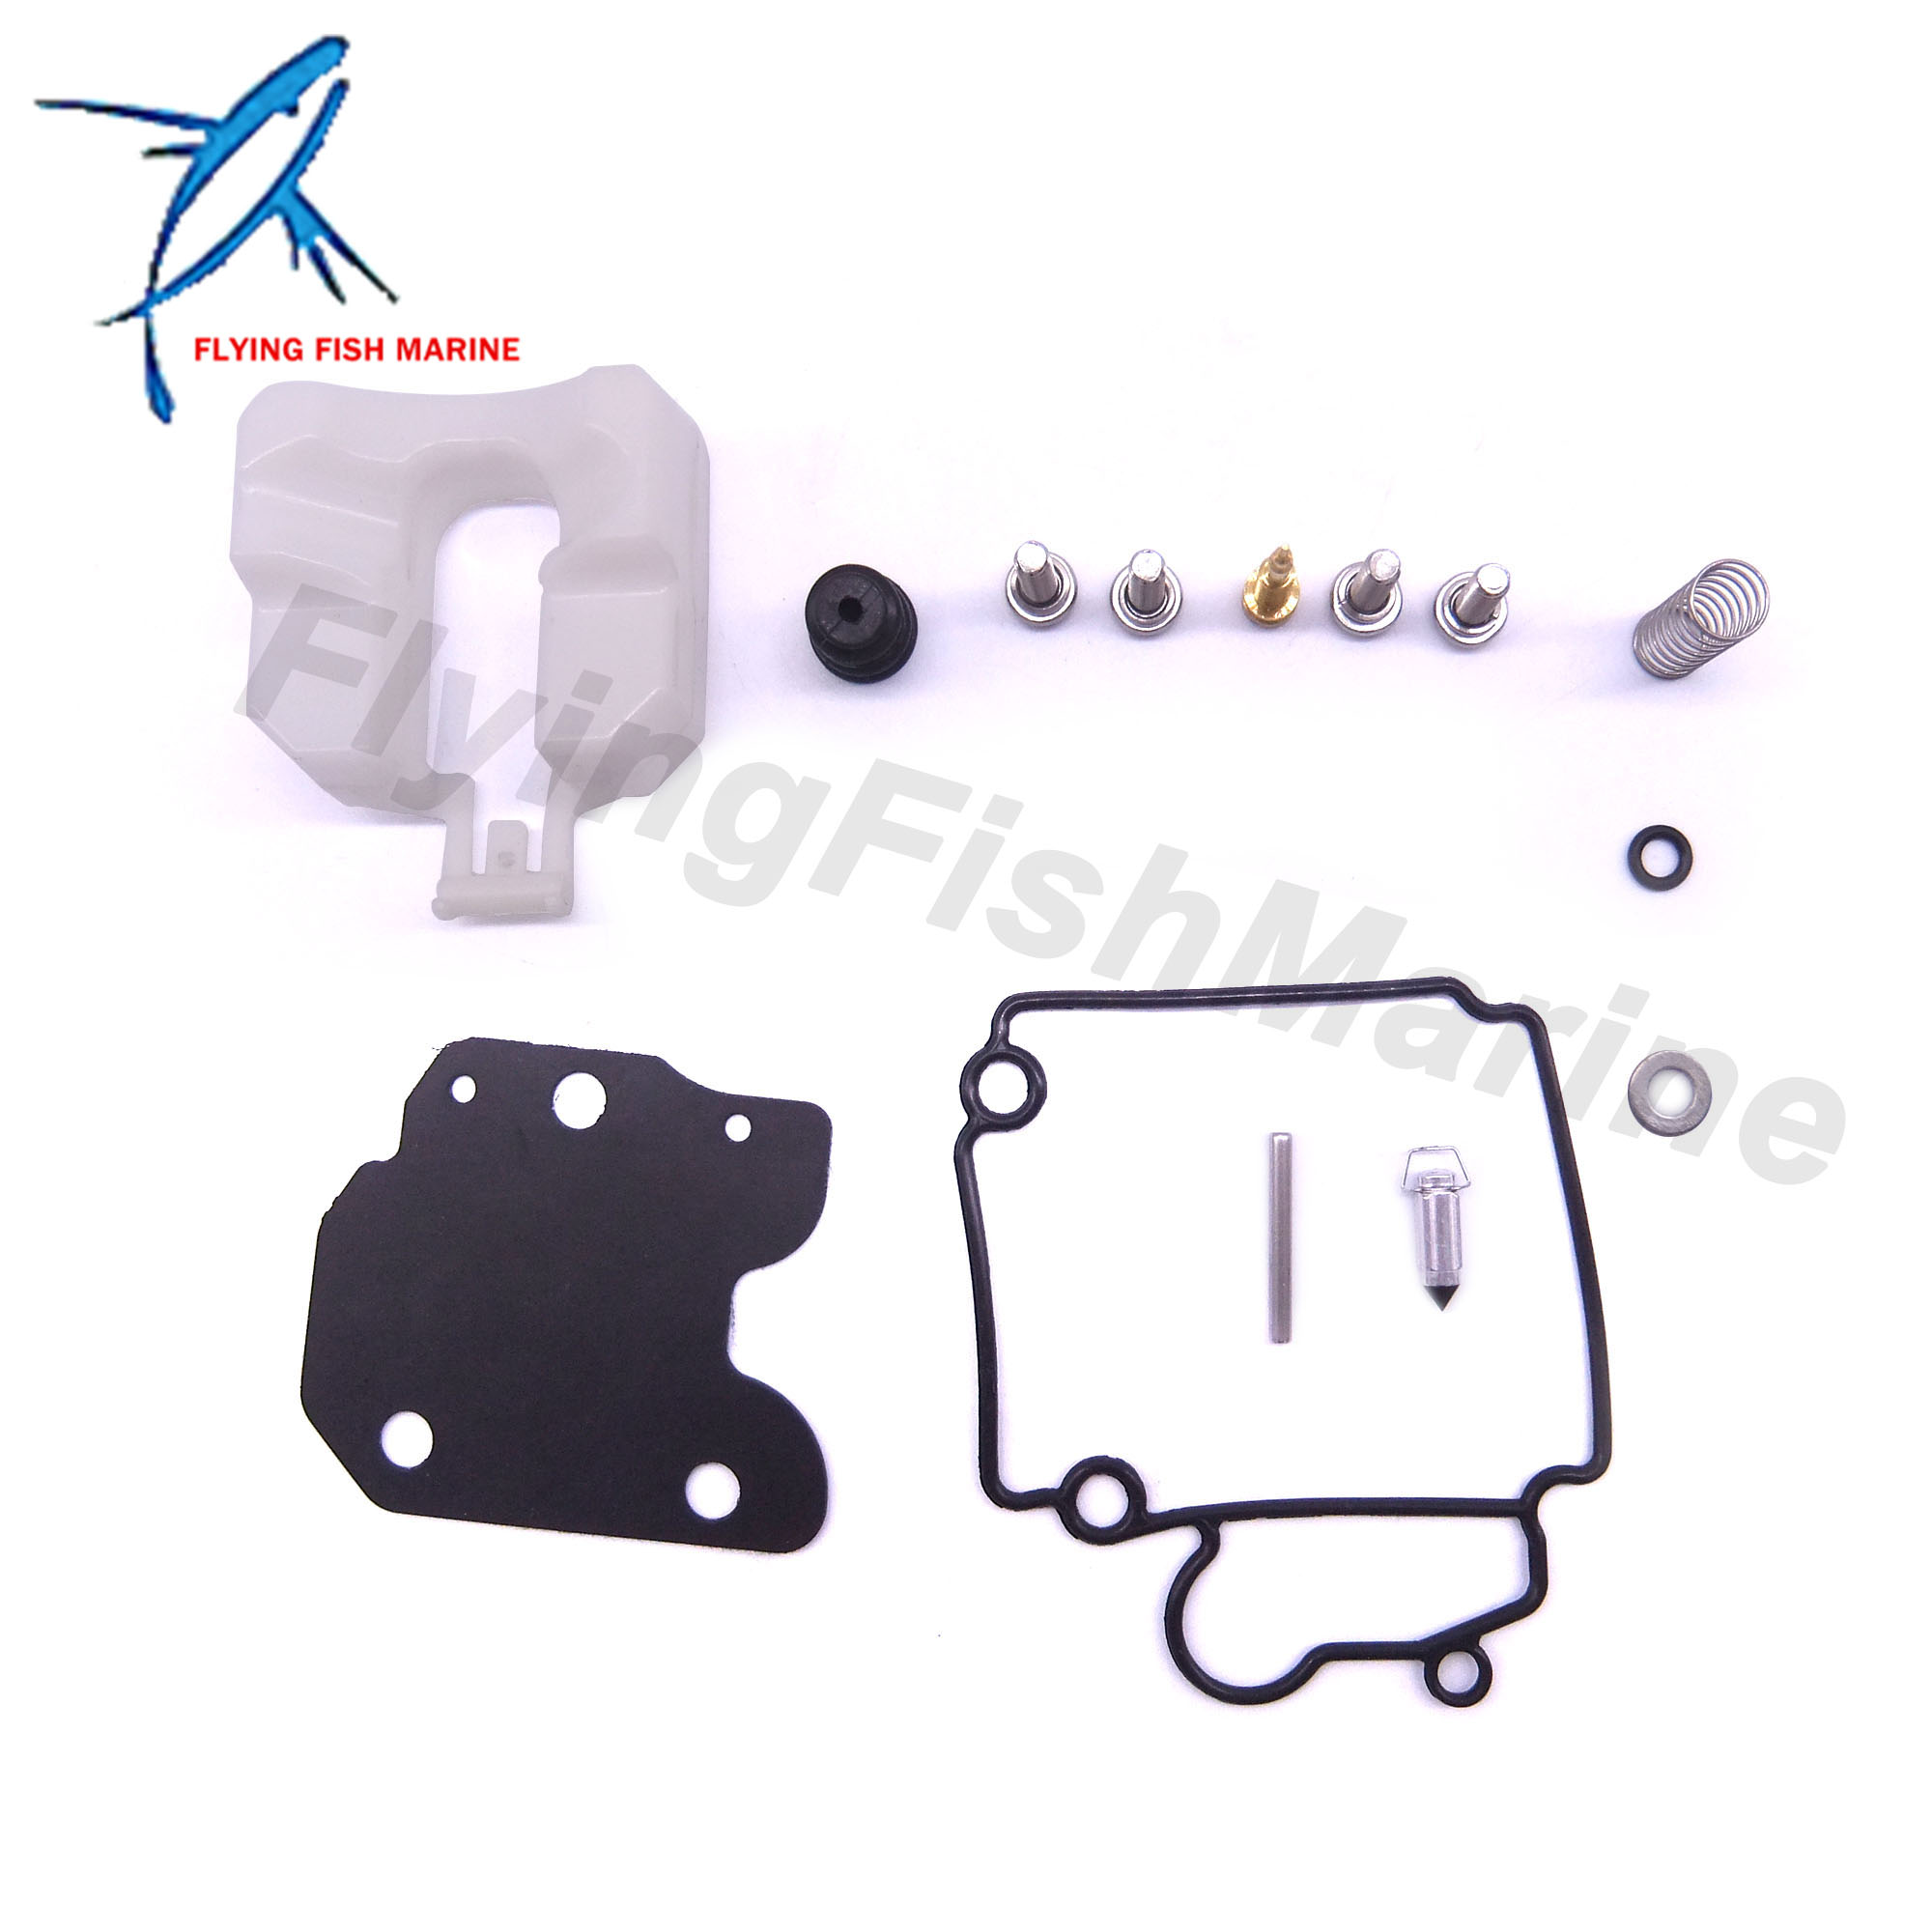 Outboard Engine Carburetor Repair Kit 65W-W0093-01 02 67C-W0093-00 01 For Yamaha F25 F30 F40 Boat Motor